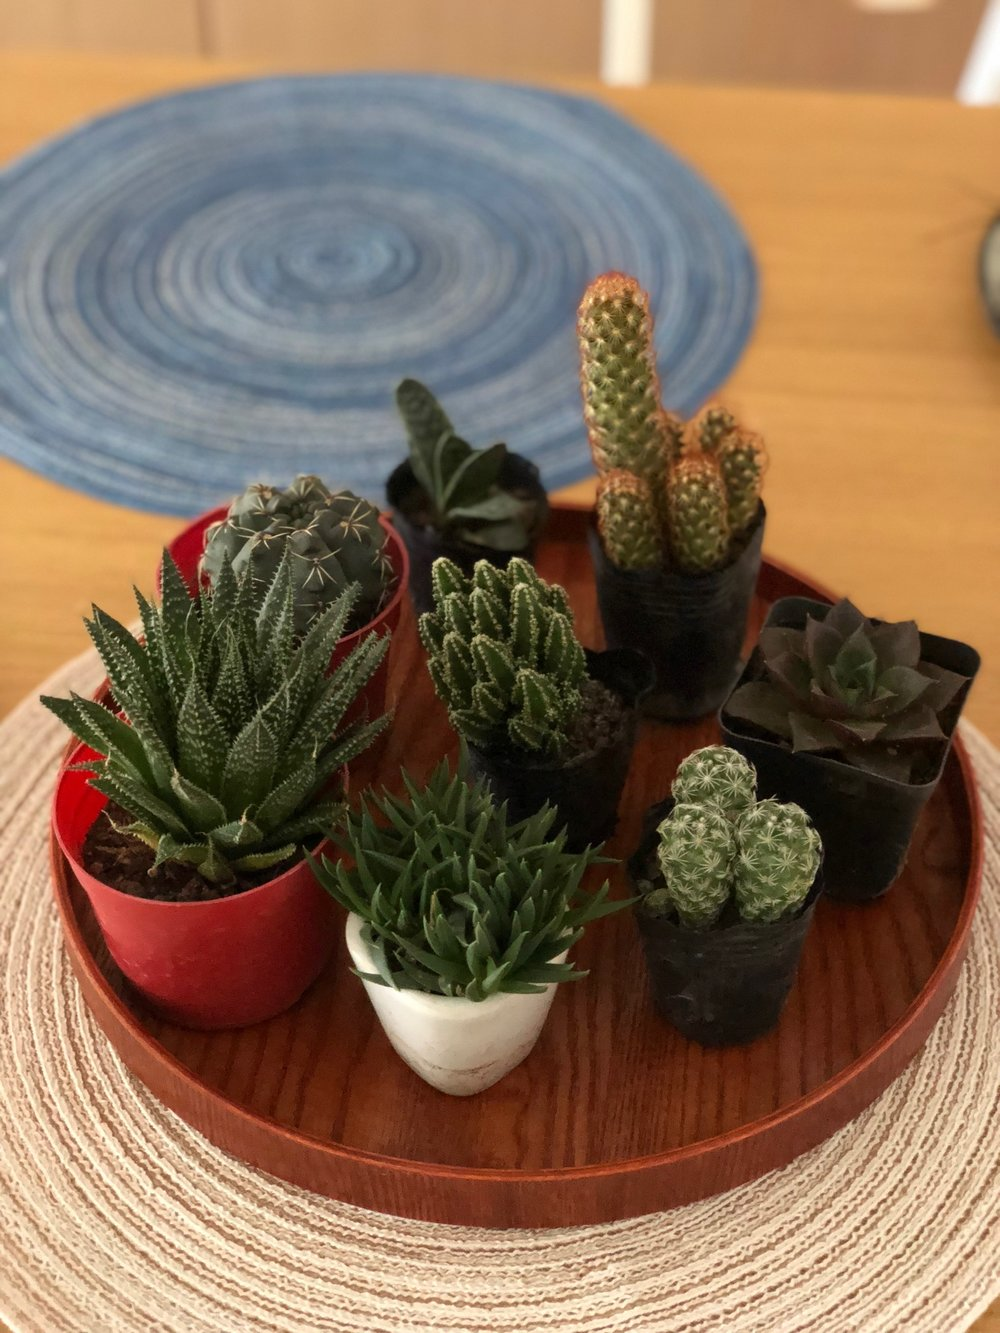 Michael's growing collection of succulents